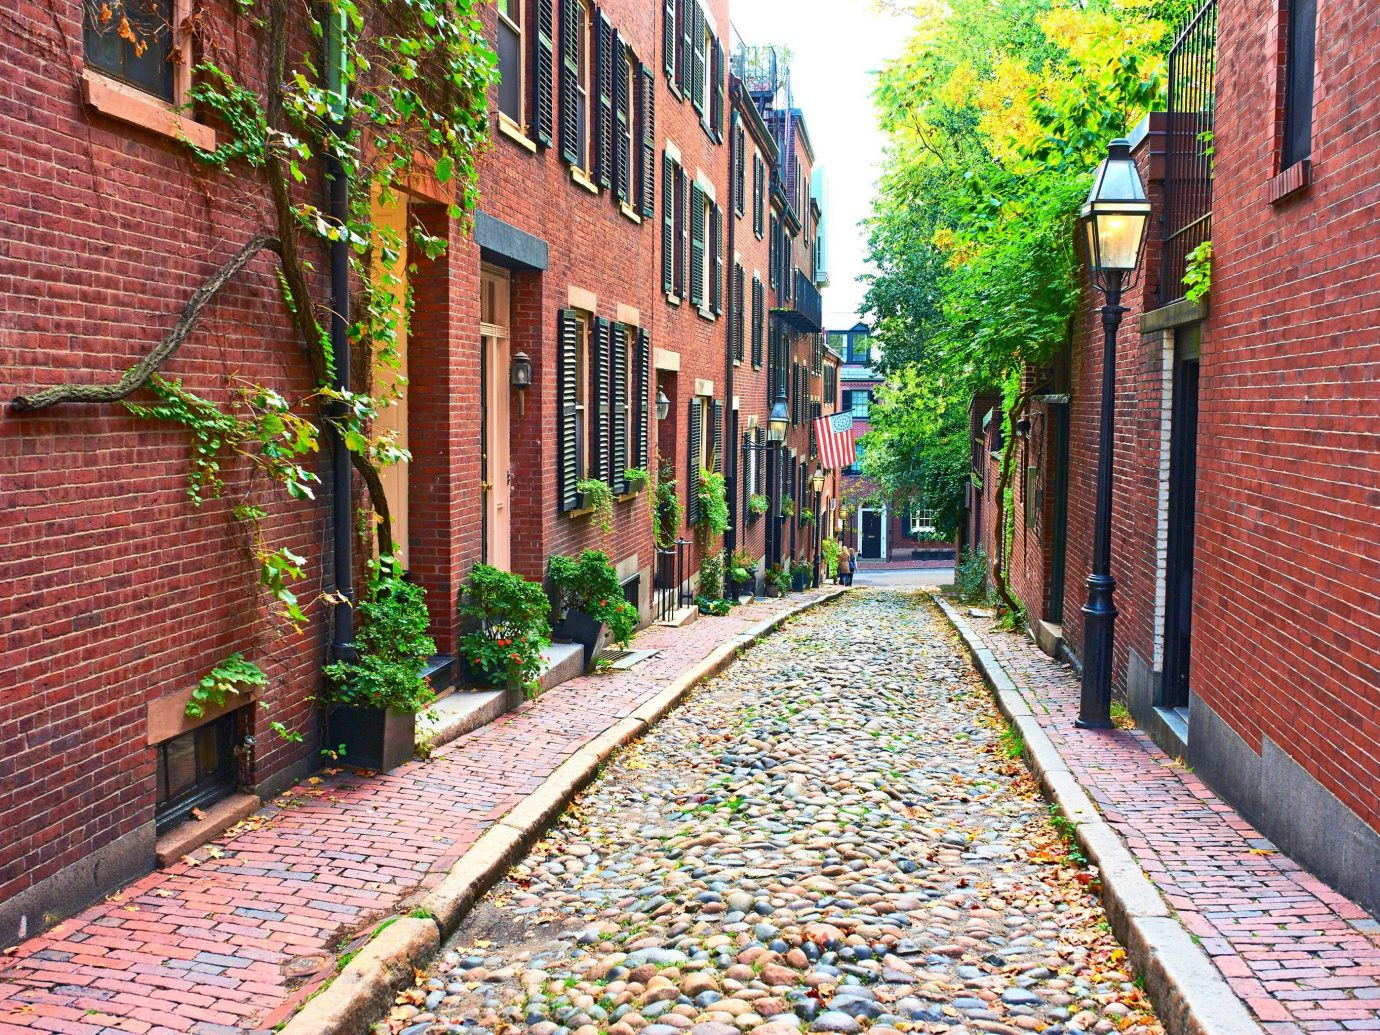 Trip Ideas outdoor brick building ground way sidewalk road alley scene Town street transport lane neighbourhood City road surface residential area urban area human settlement wall track red infrastructure suburb Courtyard Village flower autumn cityscape waterway walkway